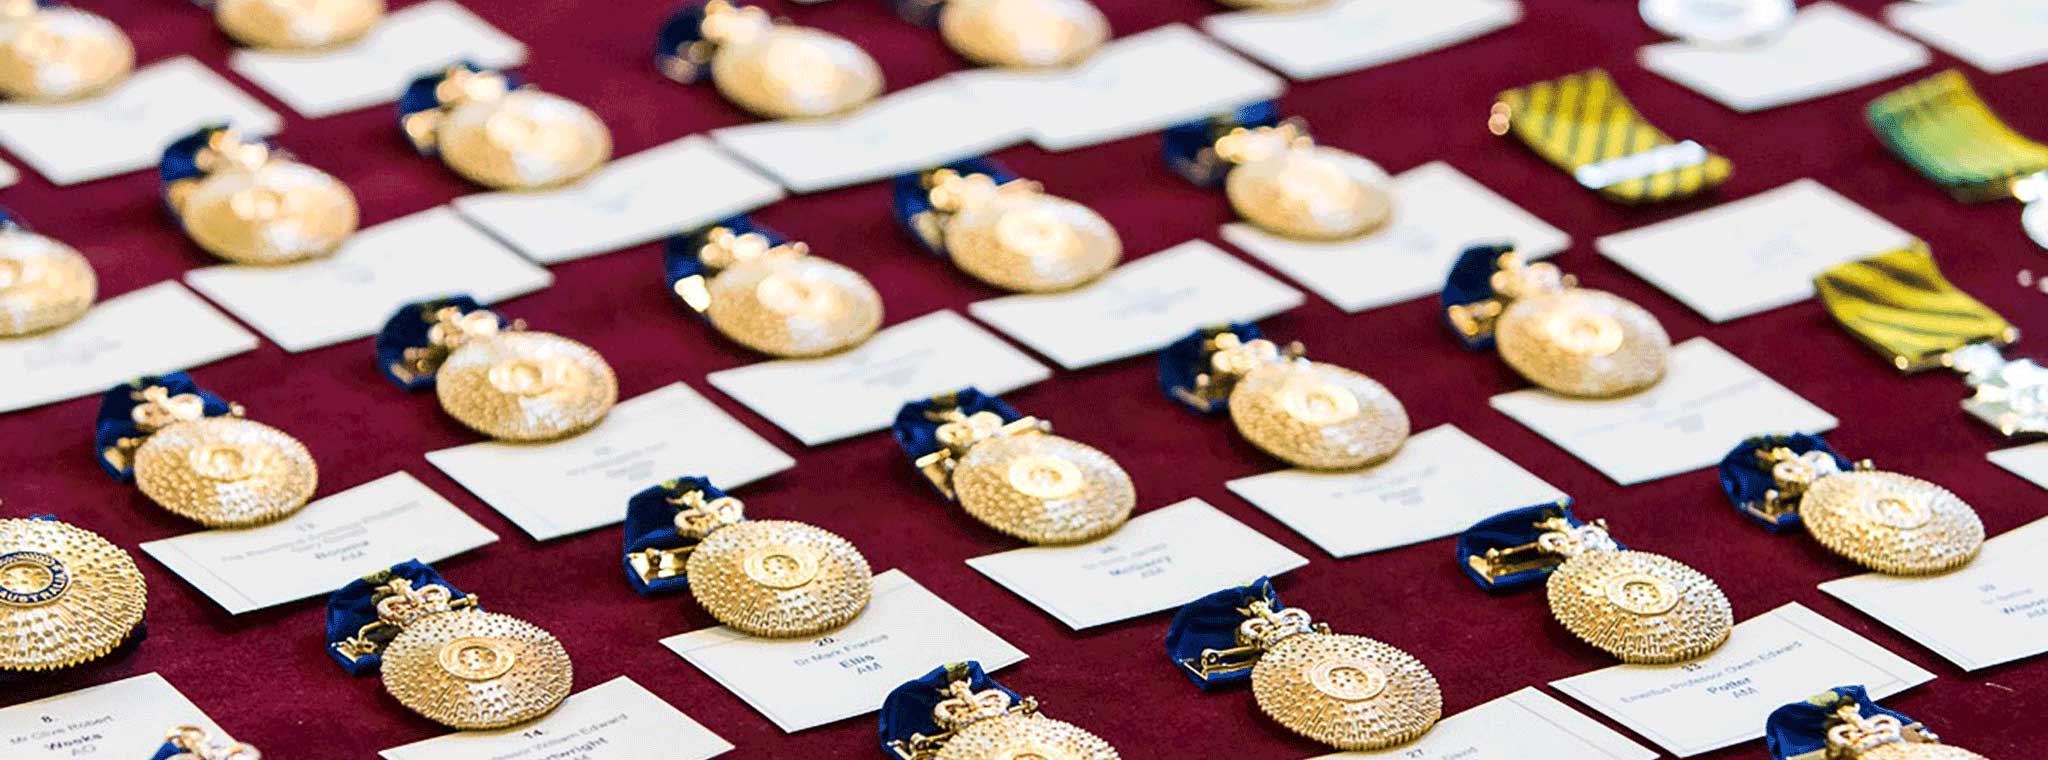 Australian honours and awards in rows ready for awarding